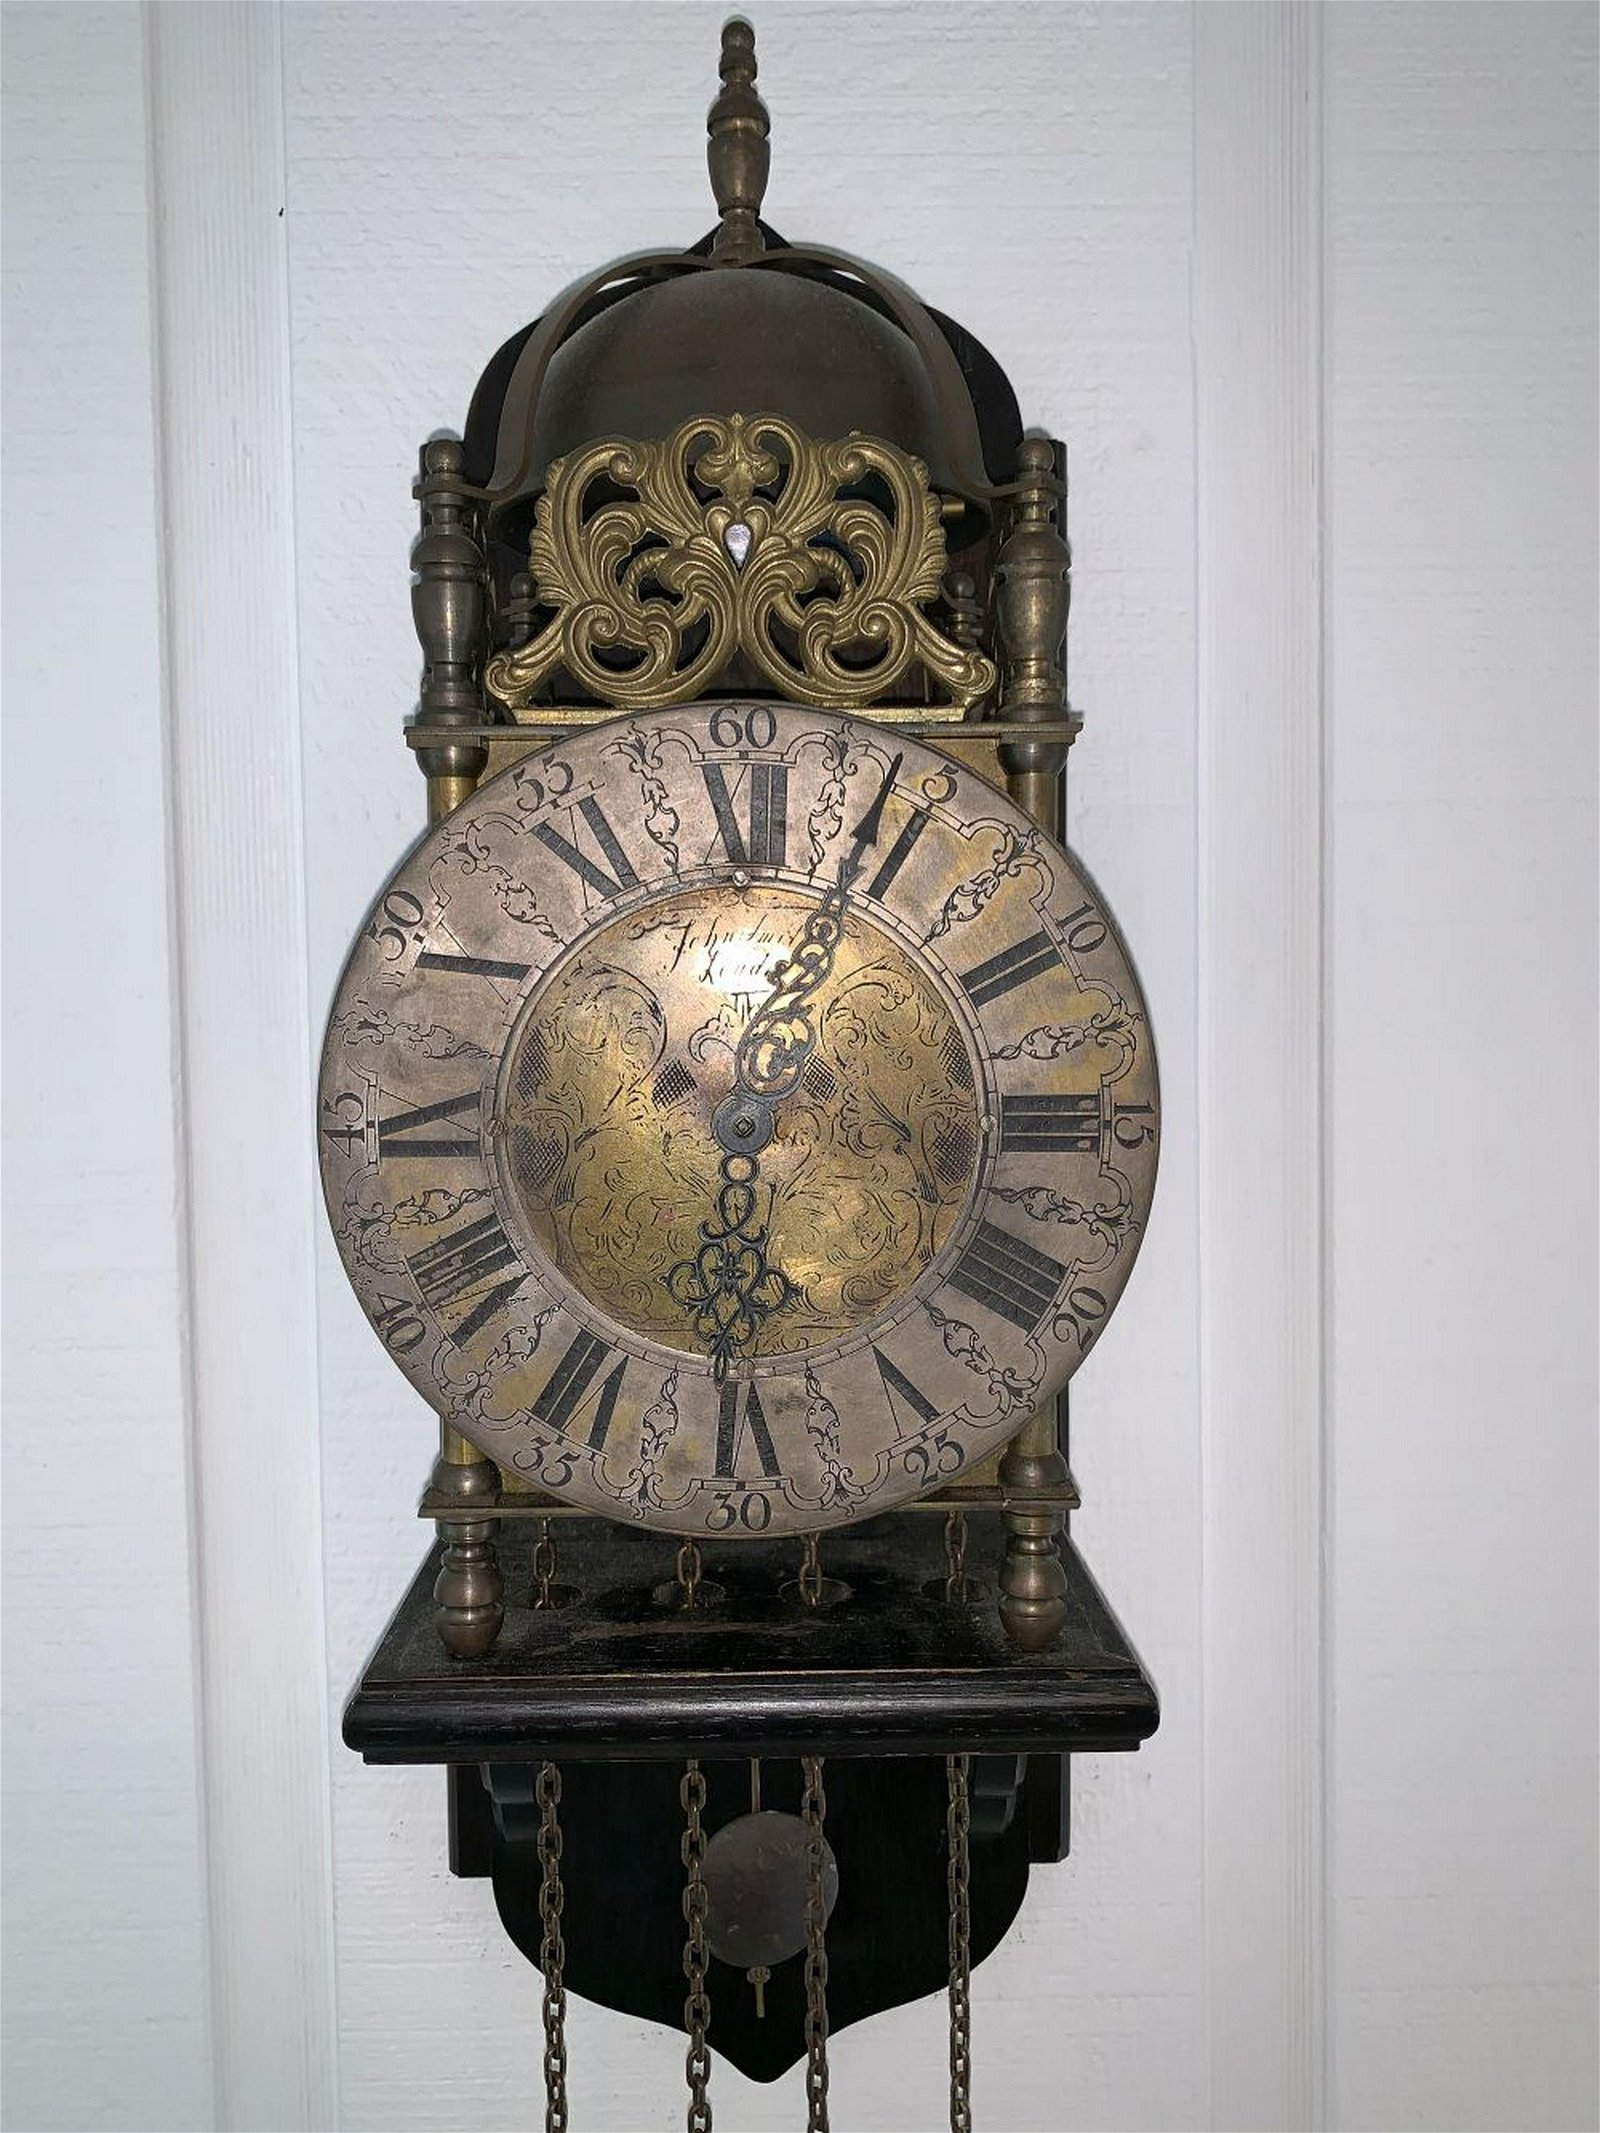 Bird cage form bracket clock with later works